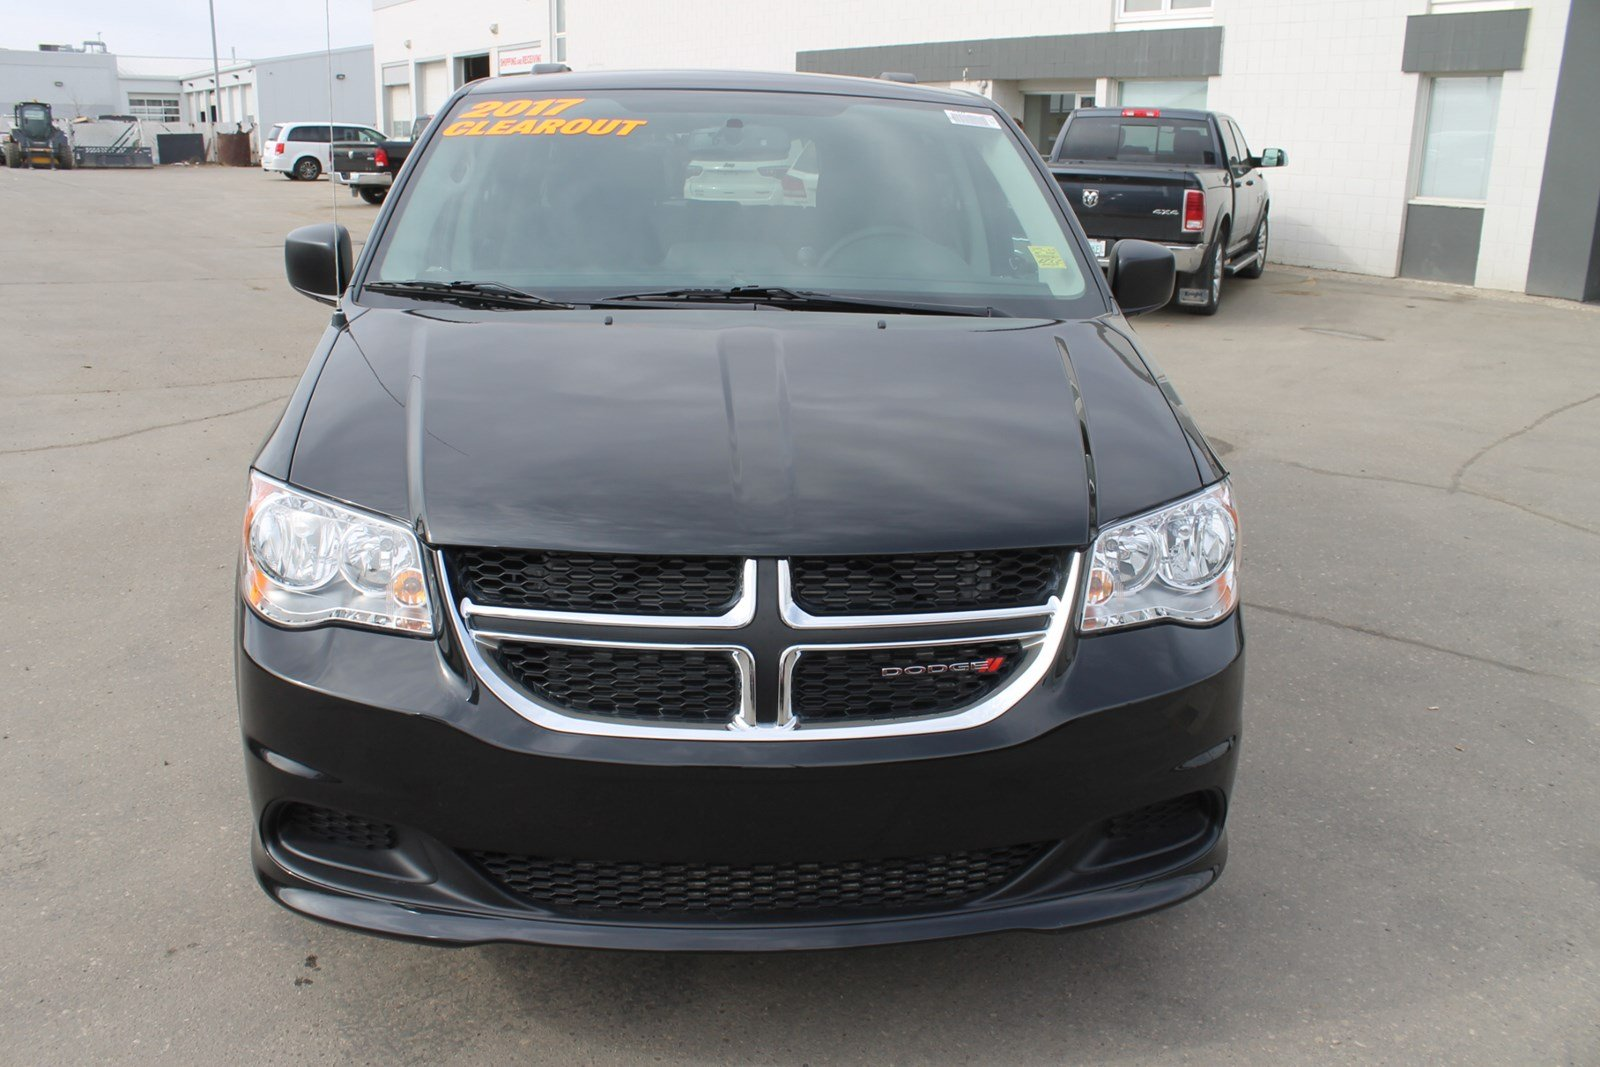 Knight Dodge Swift Current >> Pre-Owned 2017 Dodge Grand Caravan SXT - 2017 BLOW-OUT SPECIAL 'Stow N Go' Mini-van, Passenger ...